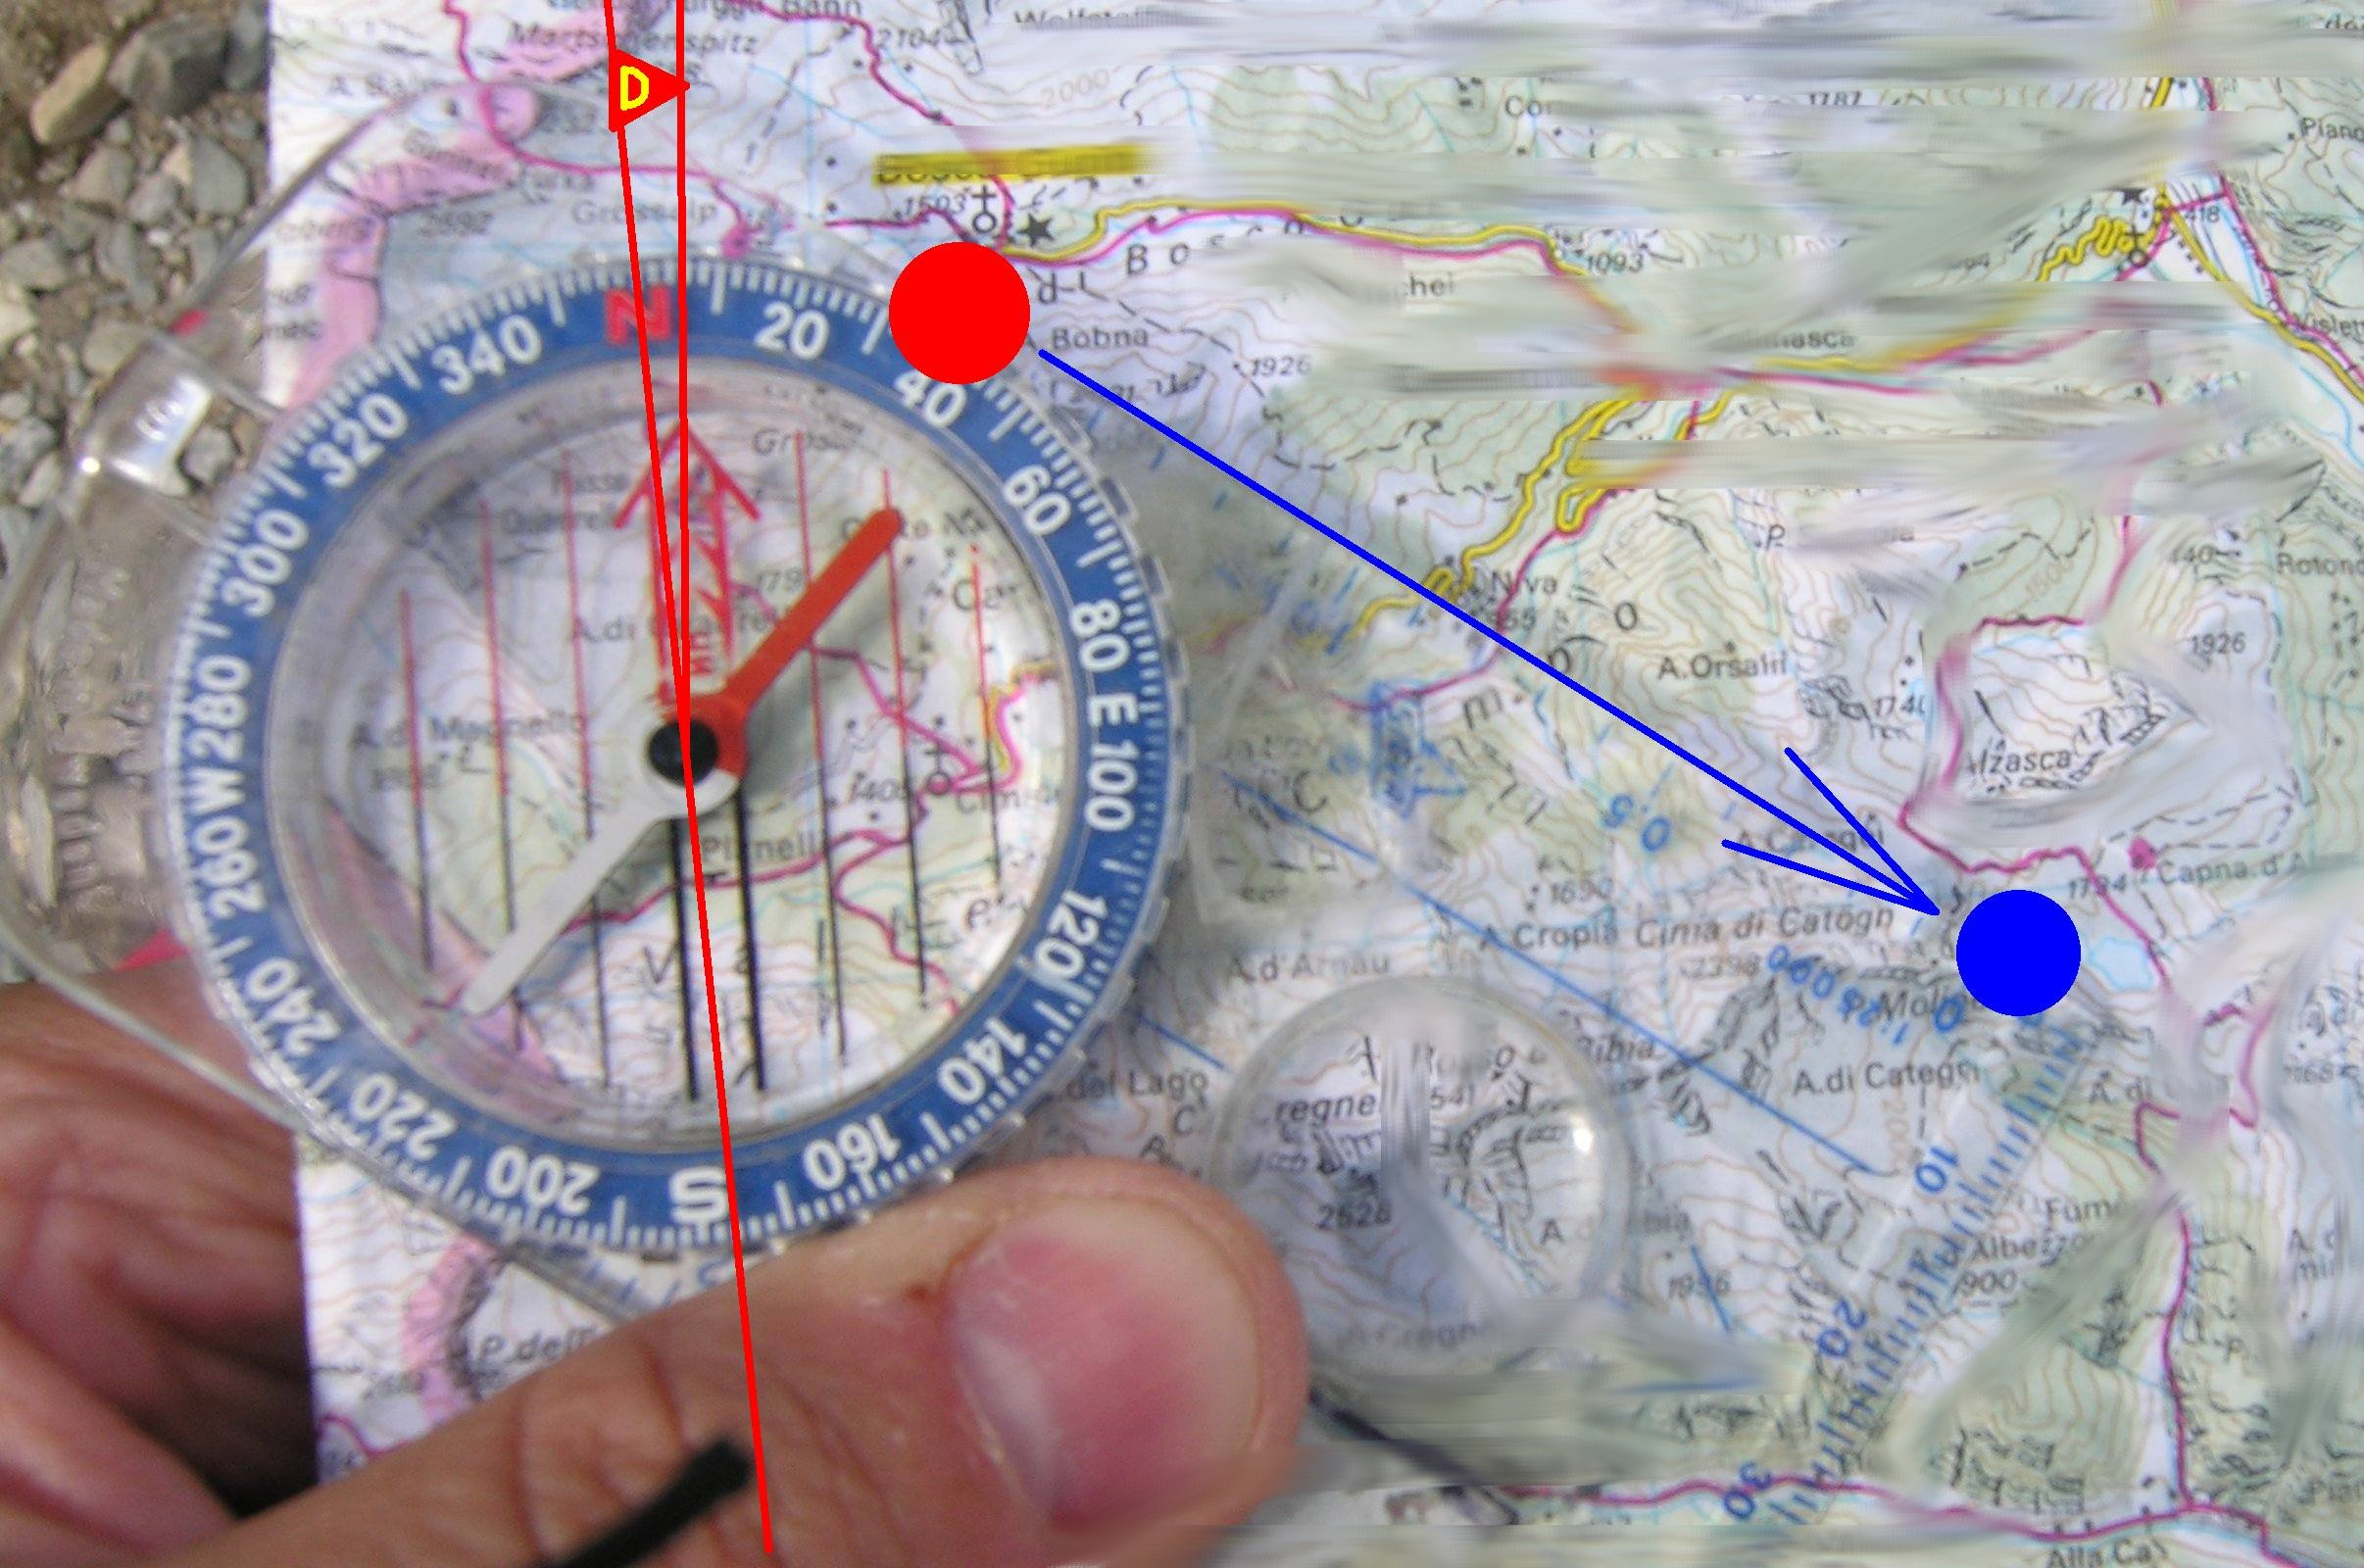 Find North with the Compass Map